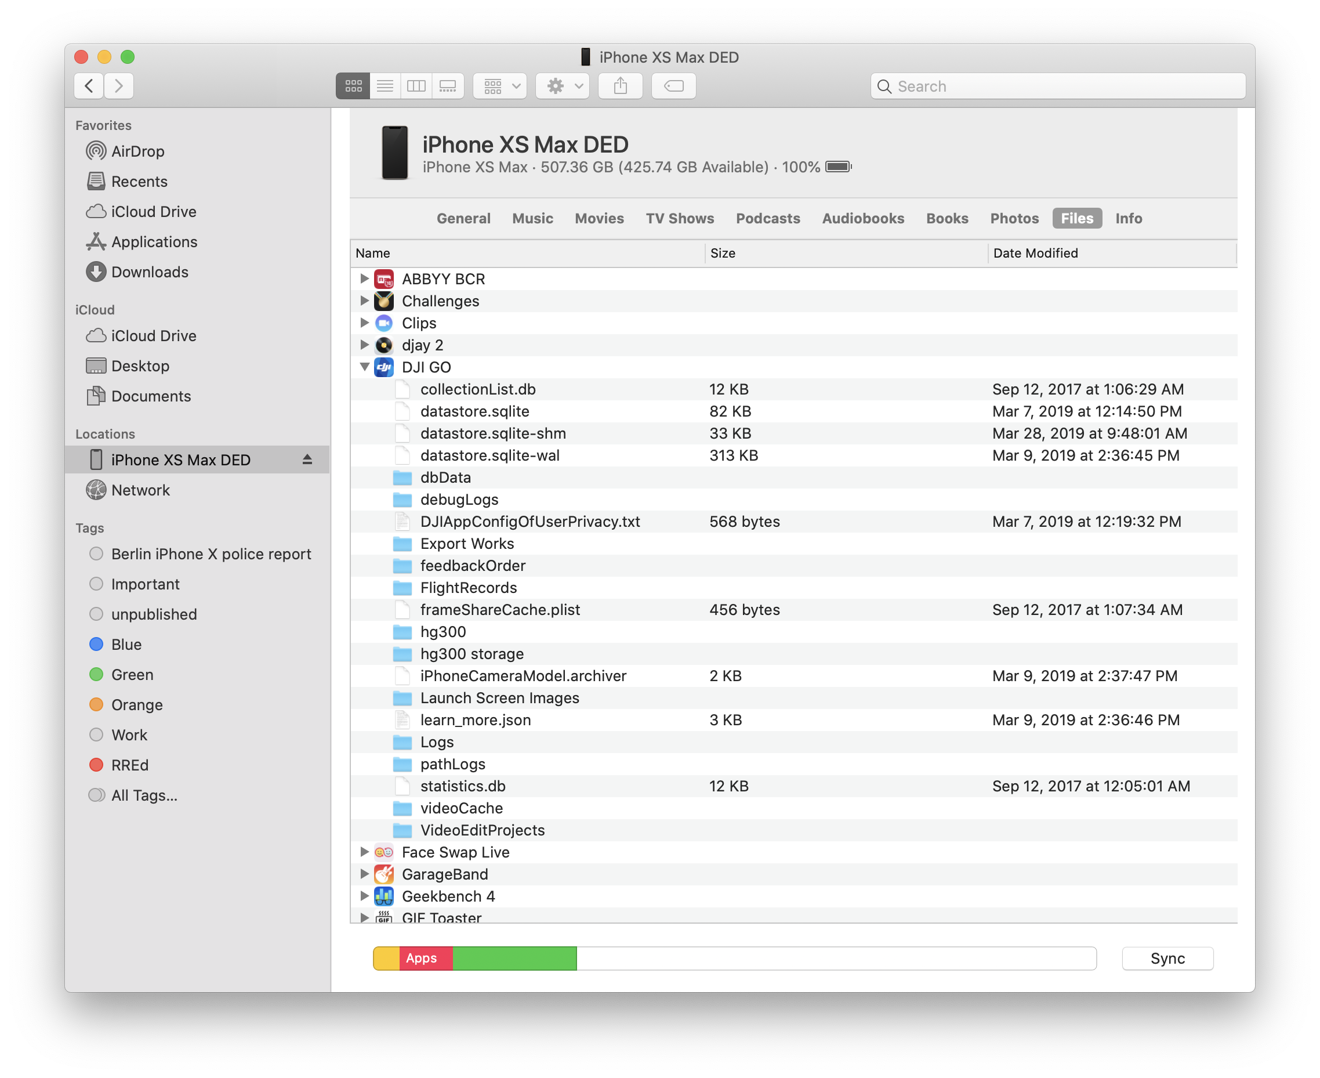 There's a way to manually move files into specific app sandboxes, but it's looking a bit rough